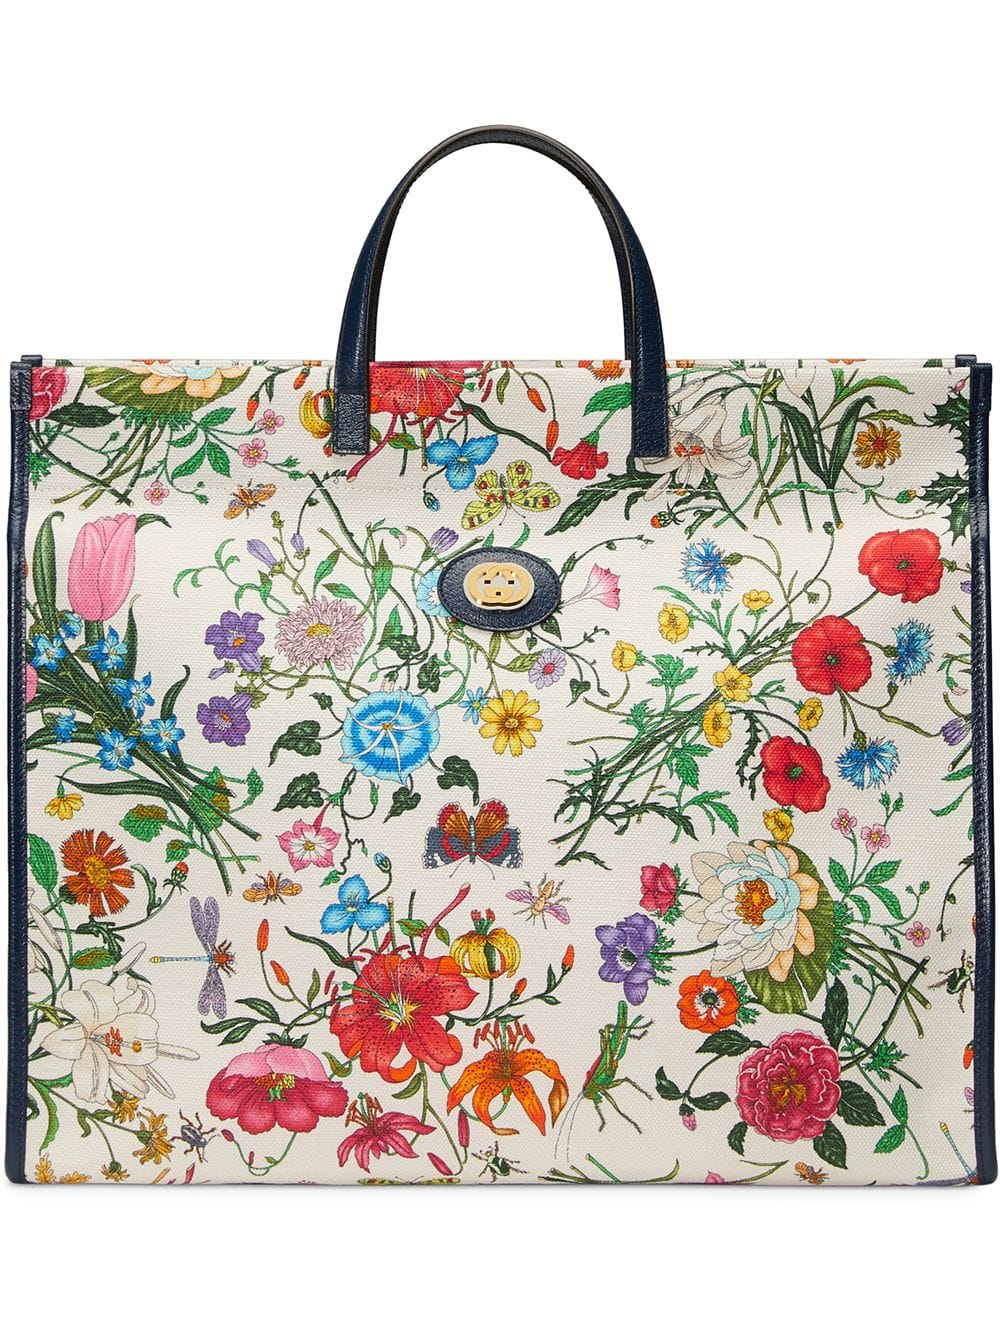 Gucci Large Flora Tote Bag Tote Bag Bags Gucci Handbags